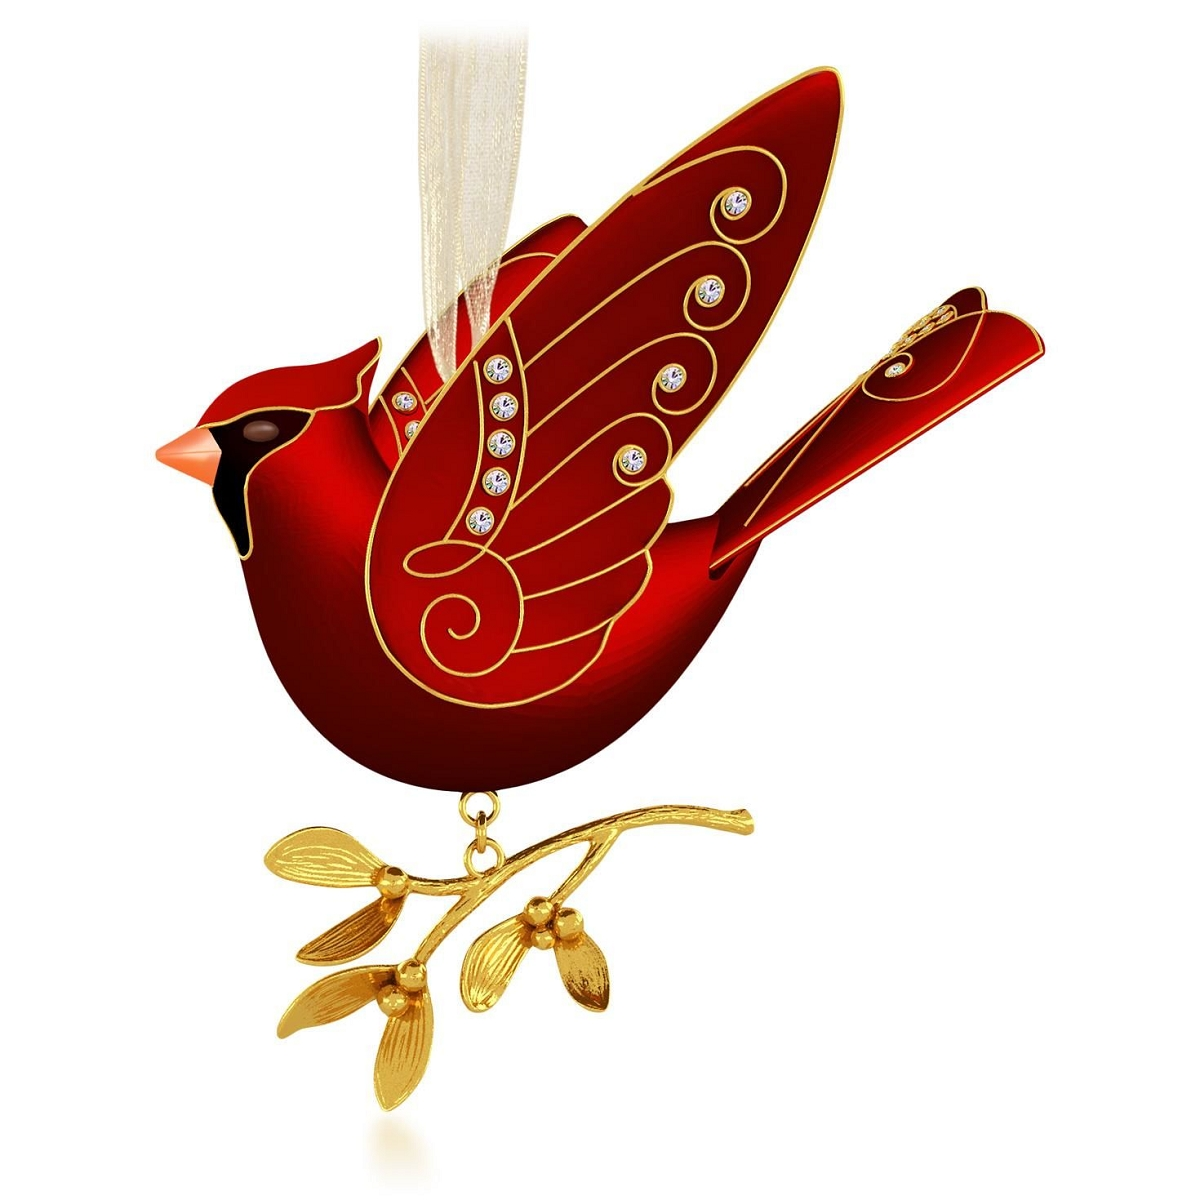 2015 ruby red cardinal hallmark keepsake ornament hooked on hallmark ornaments - Red Cardinal Christmas Decorations